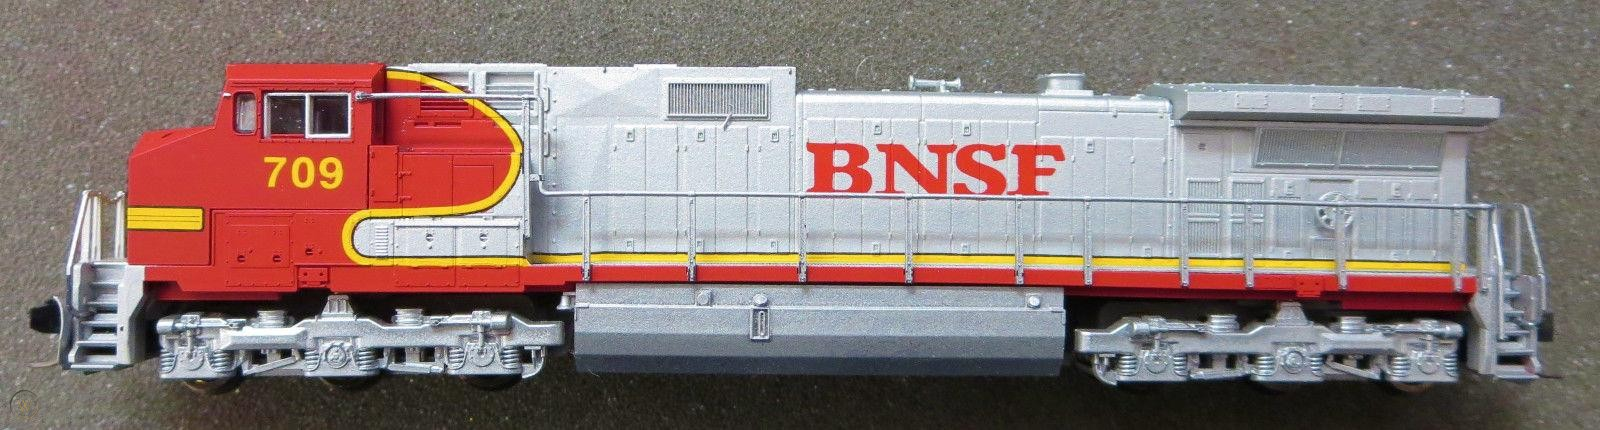 N Scale - Dream Designs - BNSF 709 - Locomotive, Diesel, GE C44-9W - Burlington Northern Santa Fe - 709